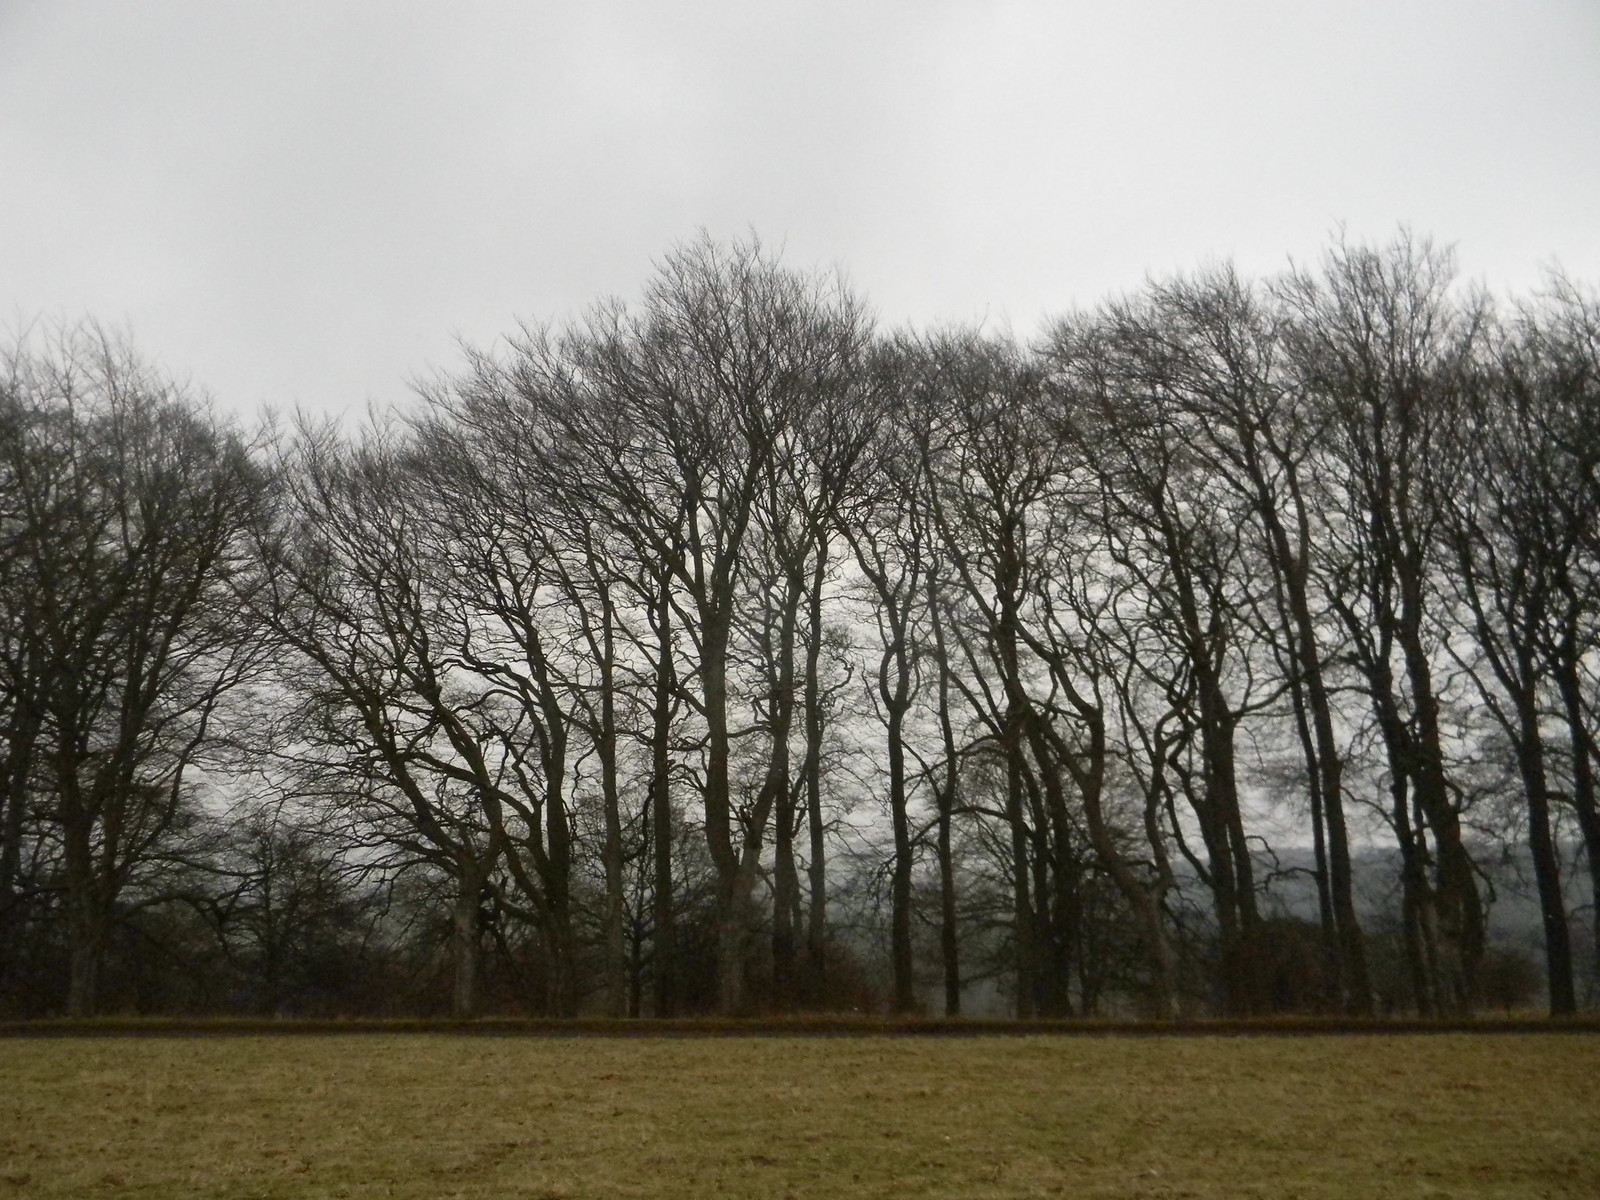 trees in a row Tring to Berkhamsted (via shortcut)